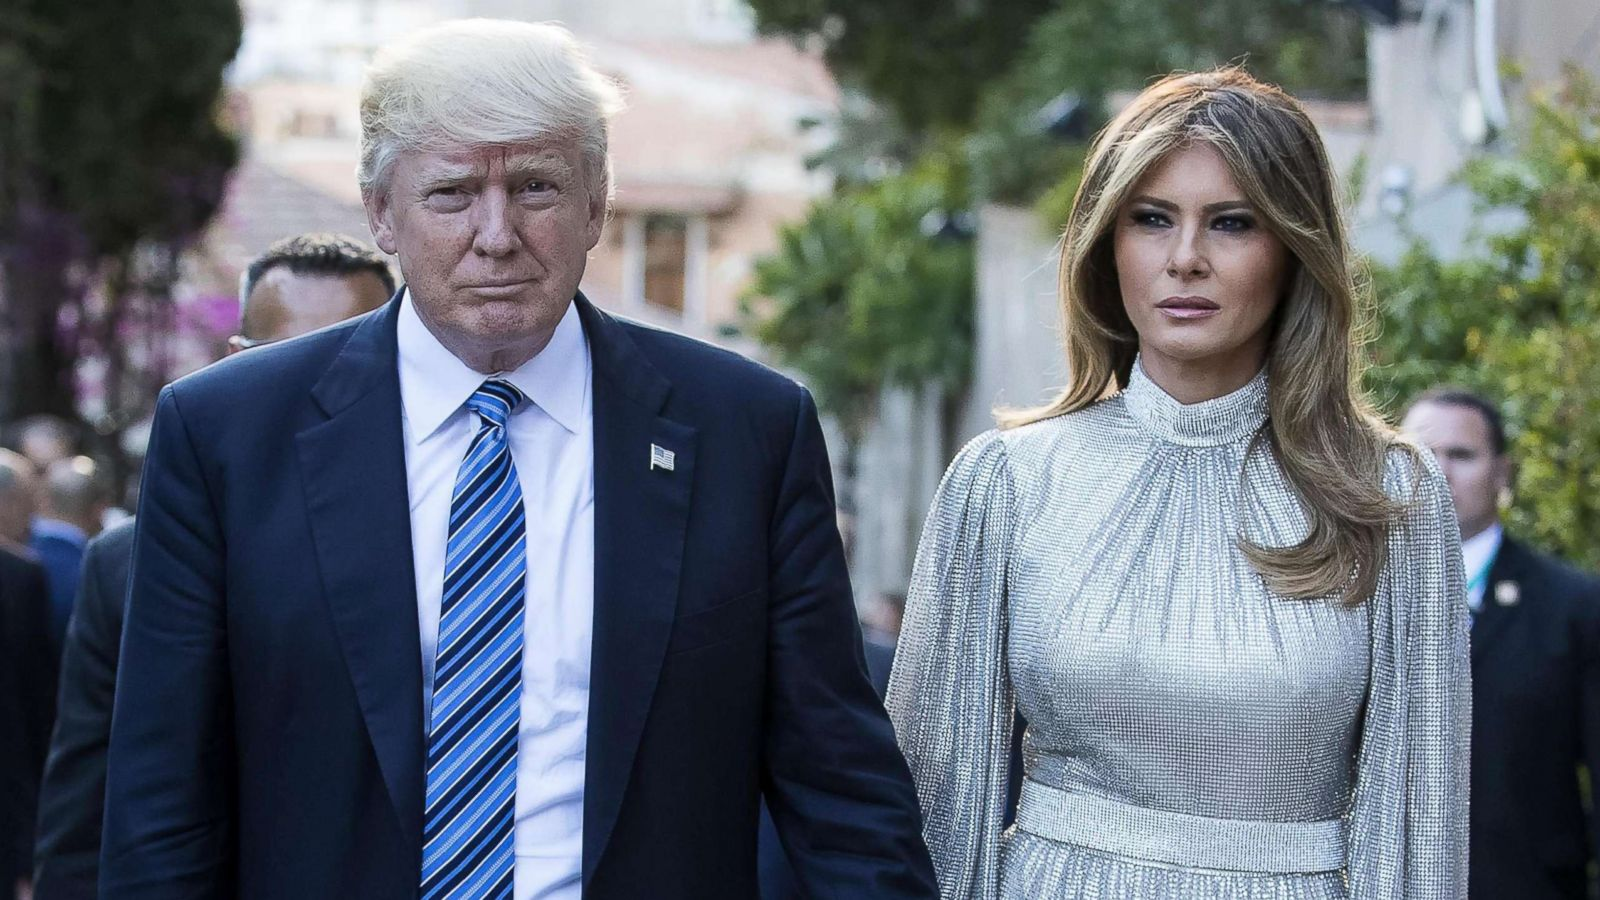 melania-trump-was-completely-against-the-white-house-election-party-book-says